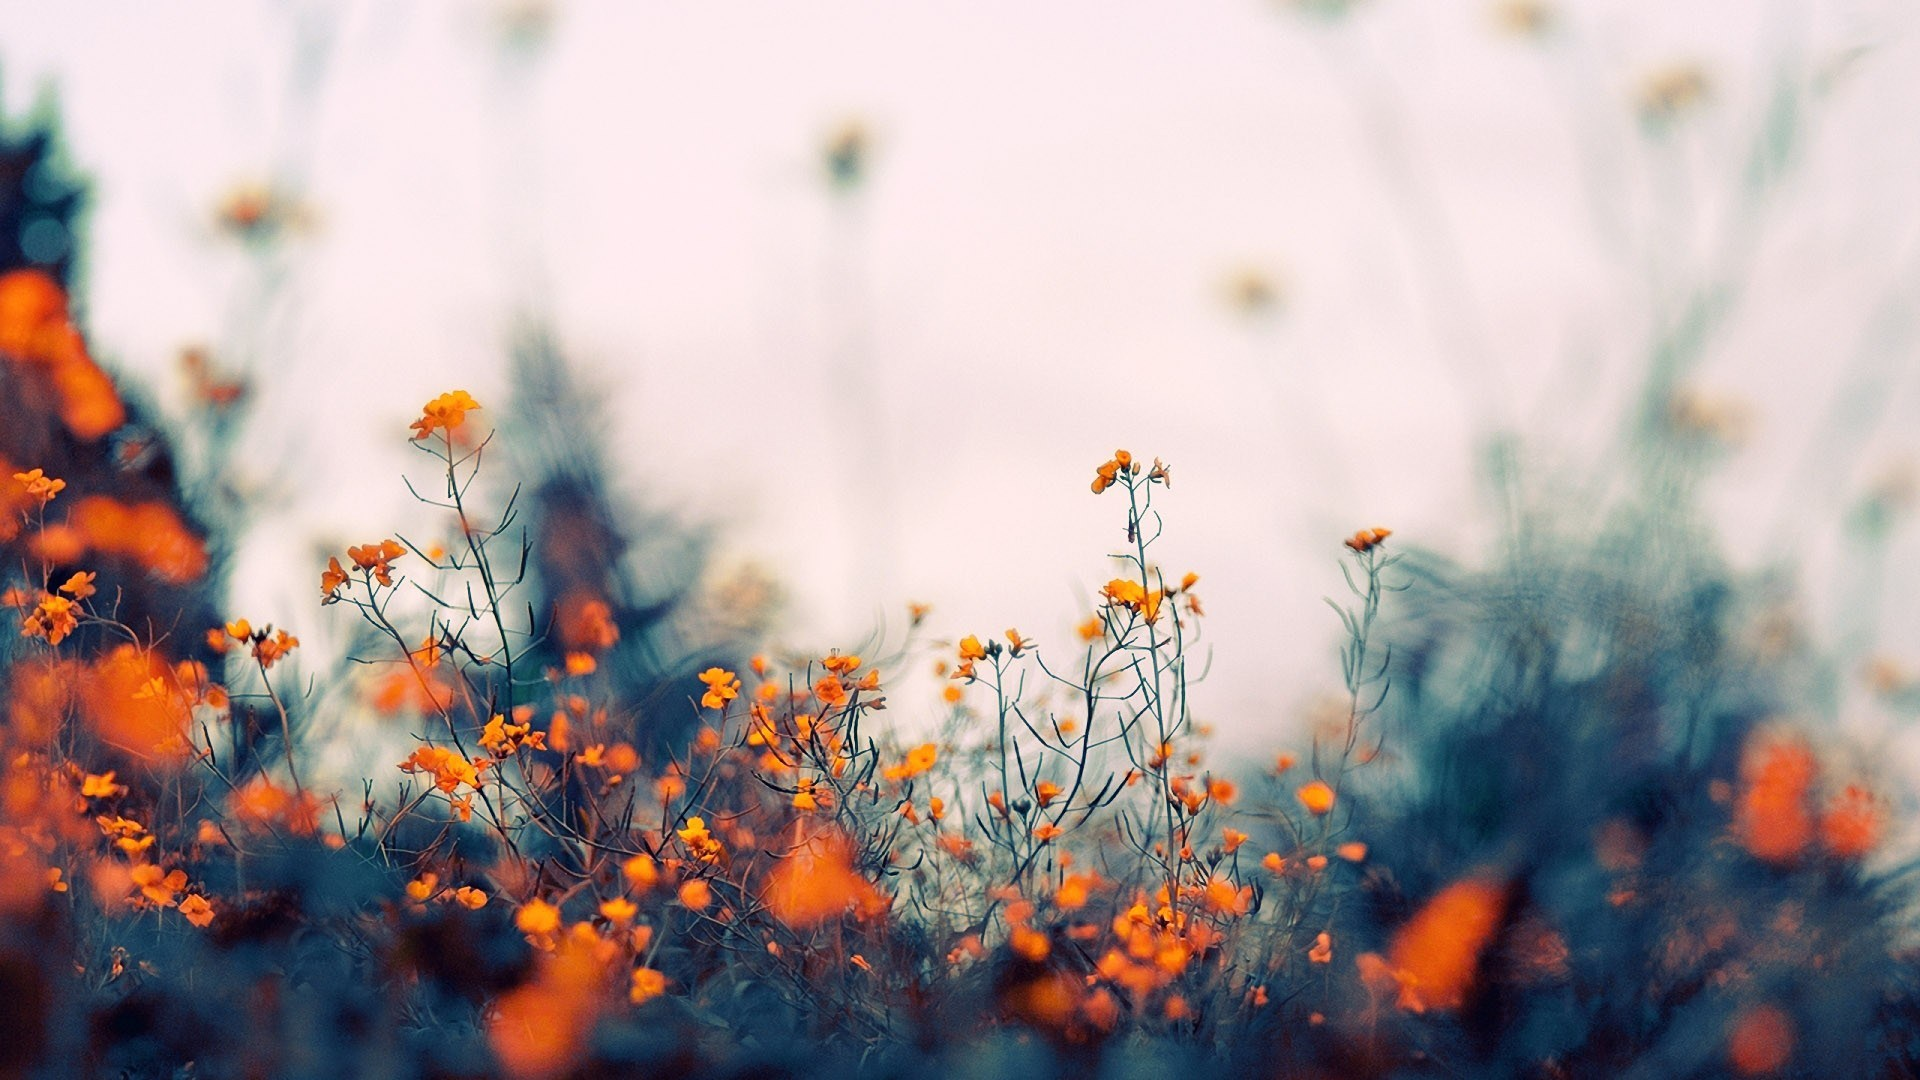 orange flowers field focus bokeh nature wide hd wallpaper is a lovely background.